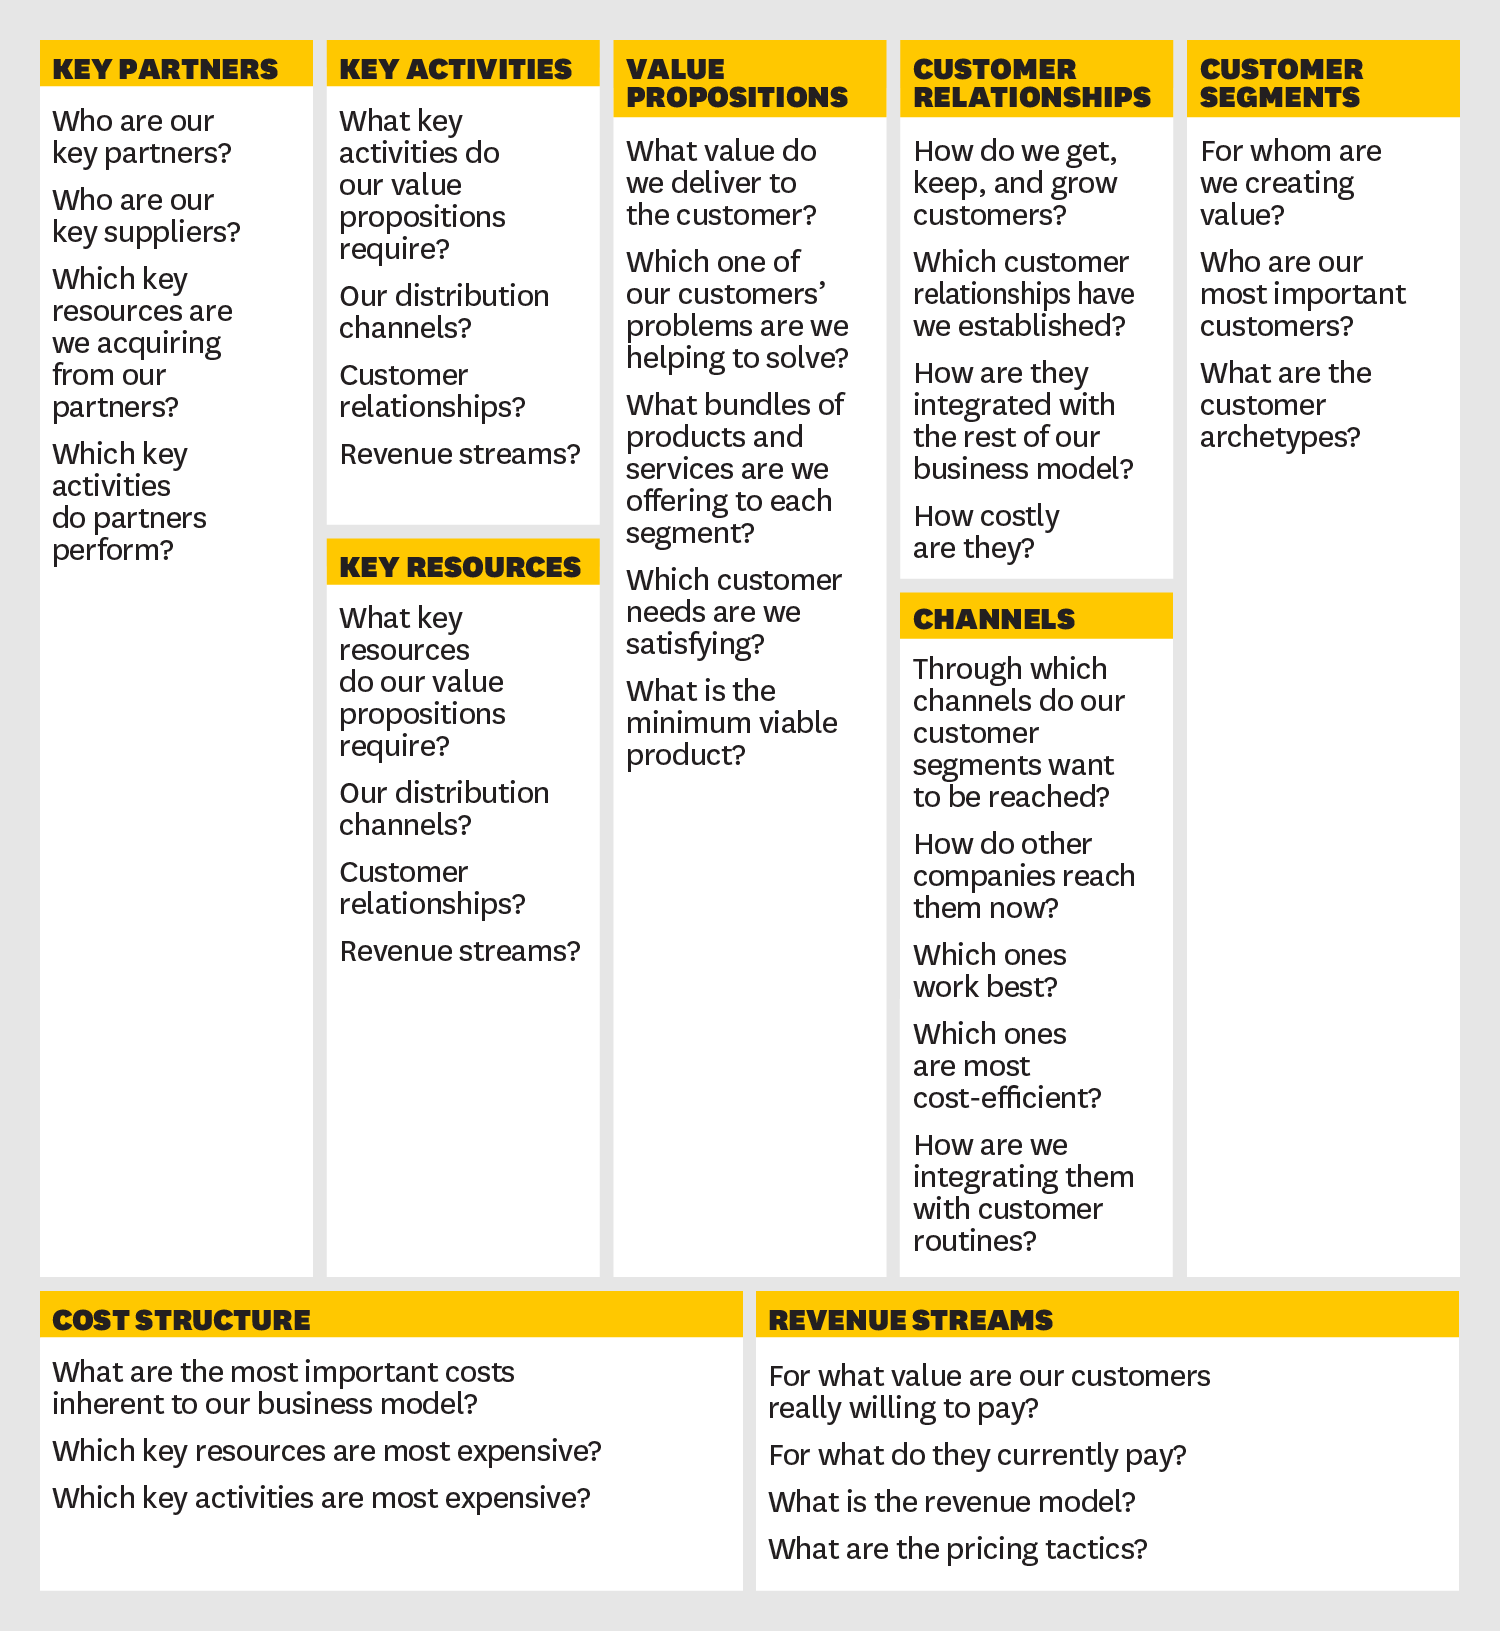 Sketch Out Your Hypothesis HBR Business model canvas